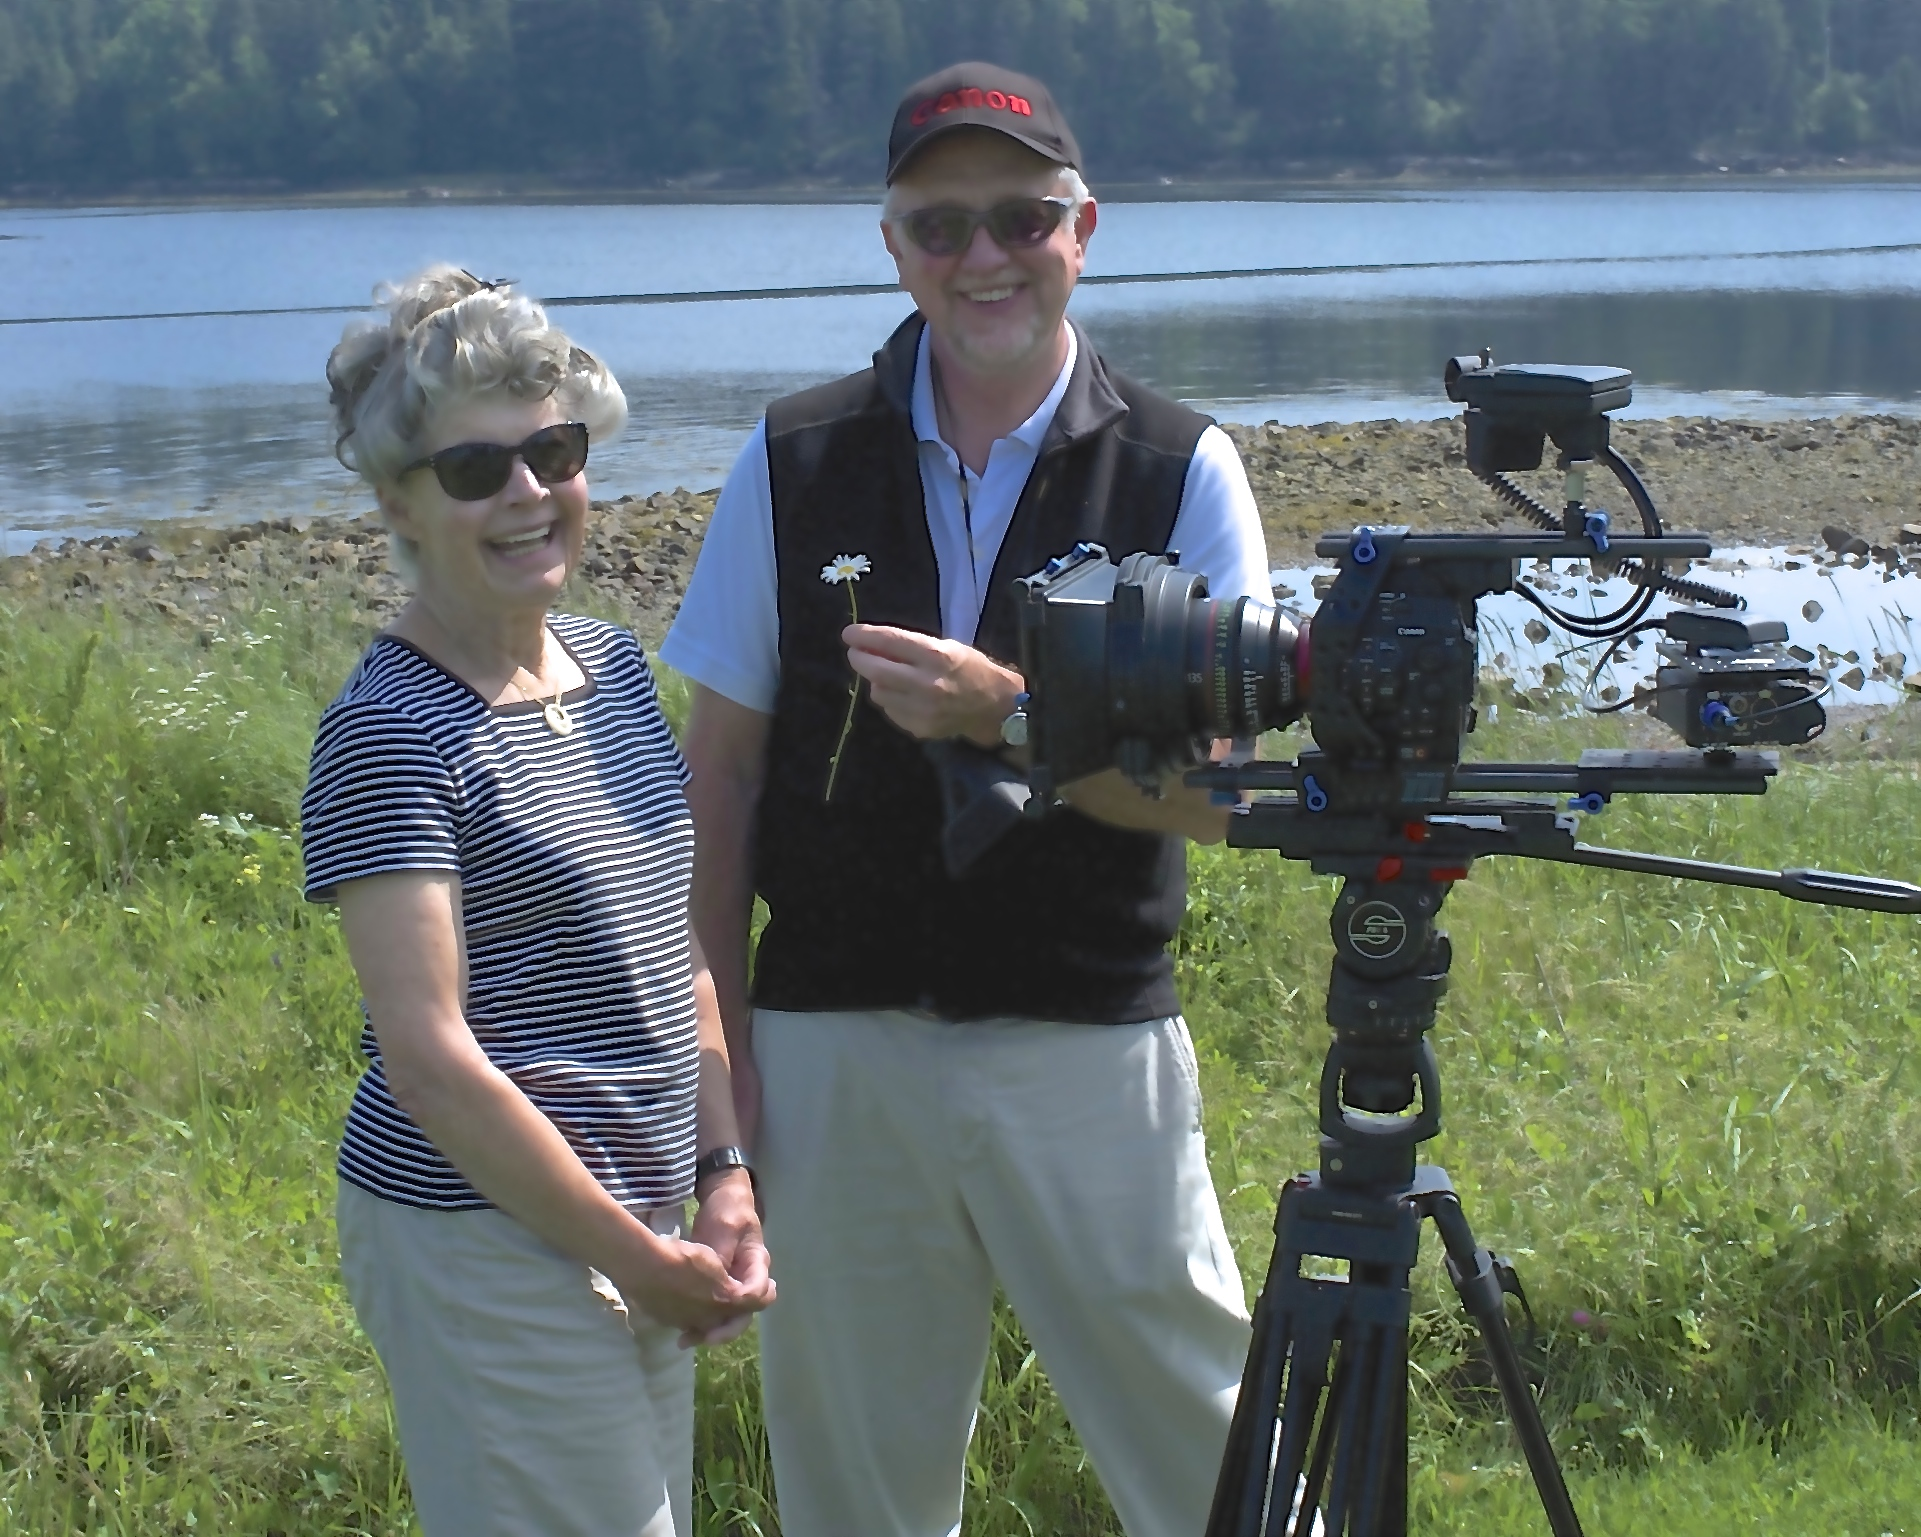 Sabra and Bill on location in Maine